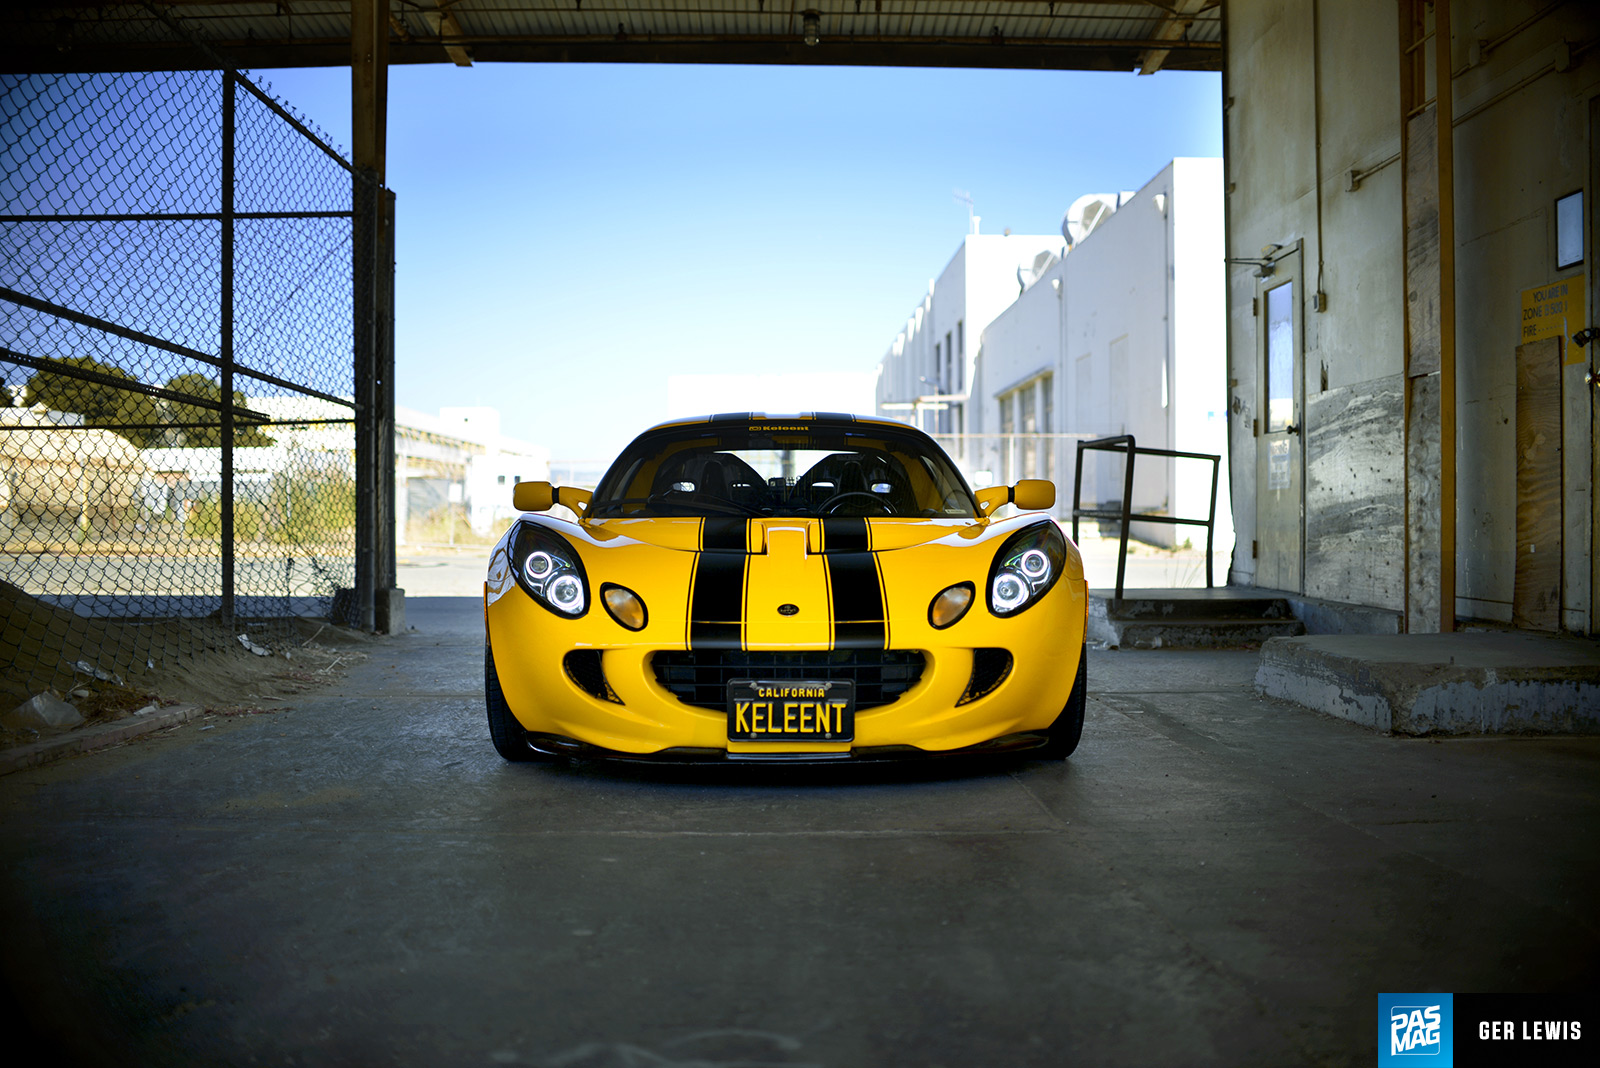 04 Clint Yesui 2005 Lotus Elise PASMAG TBGLIVE